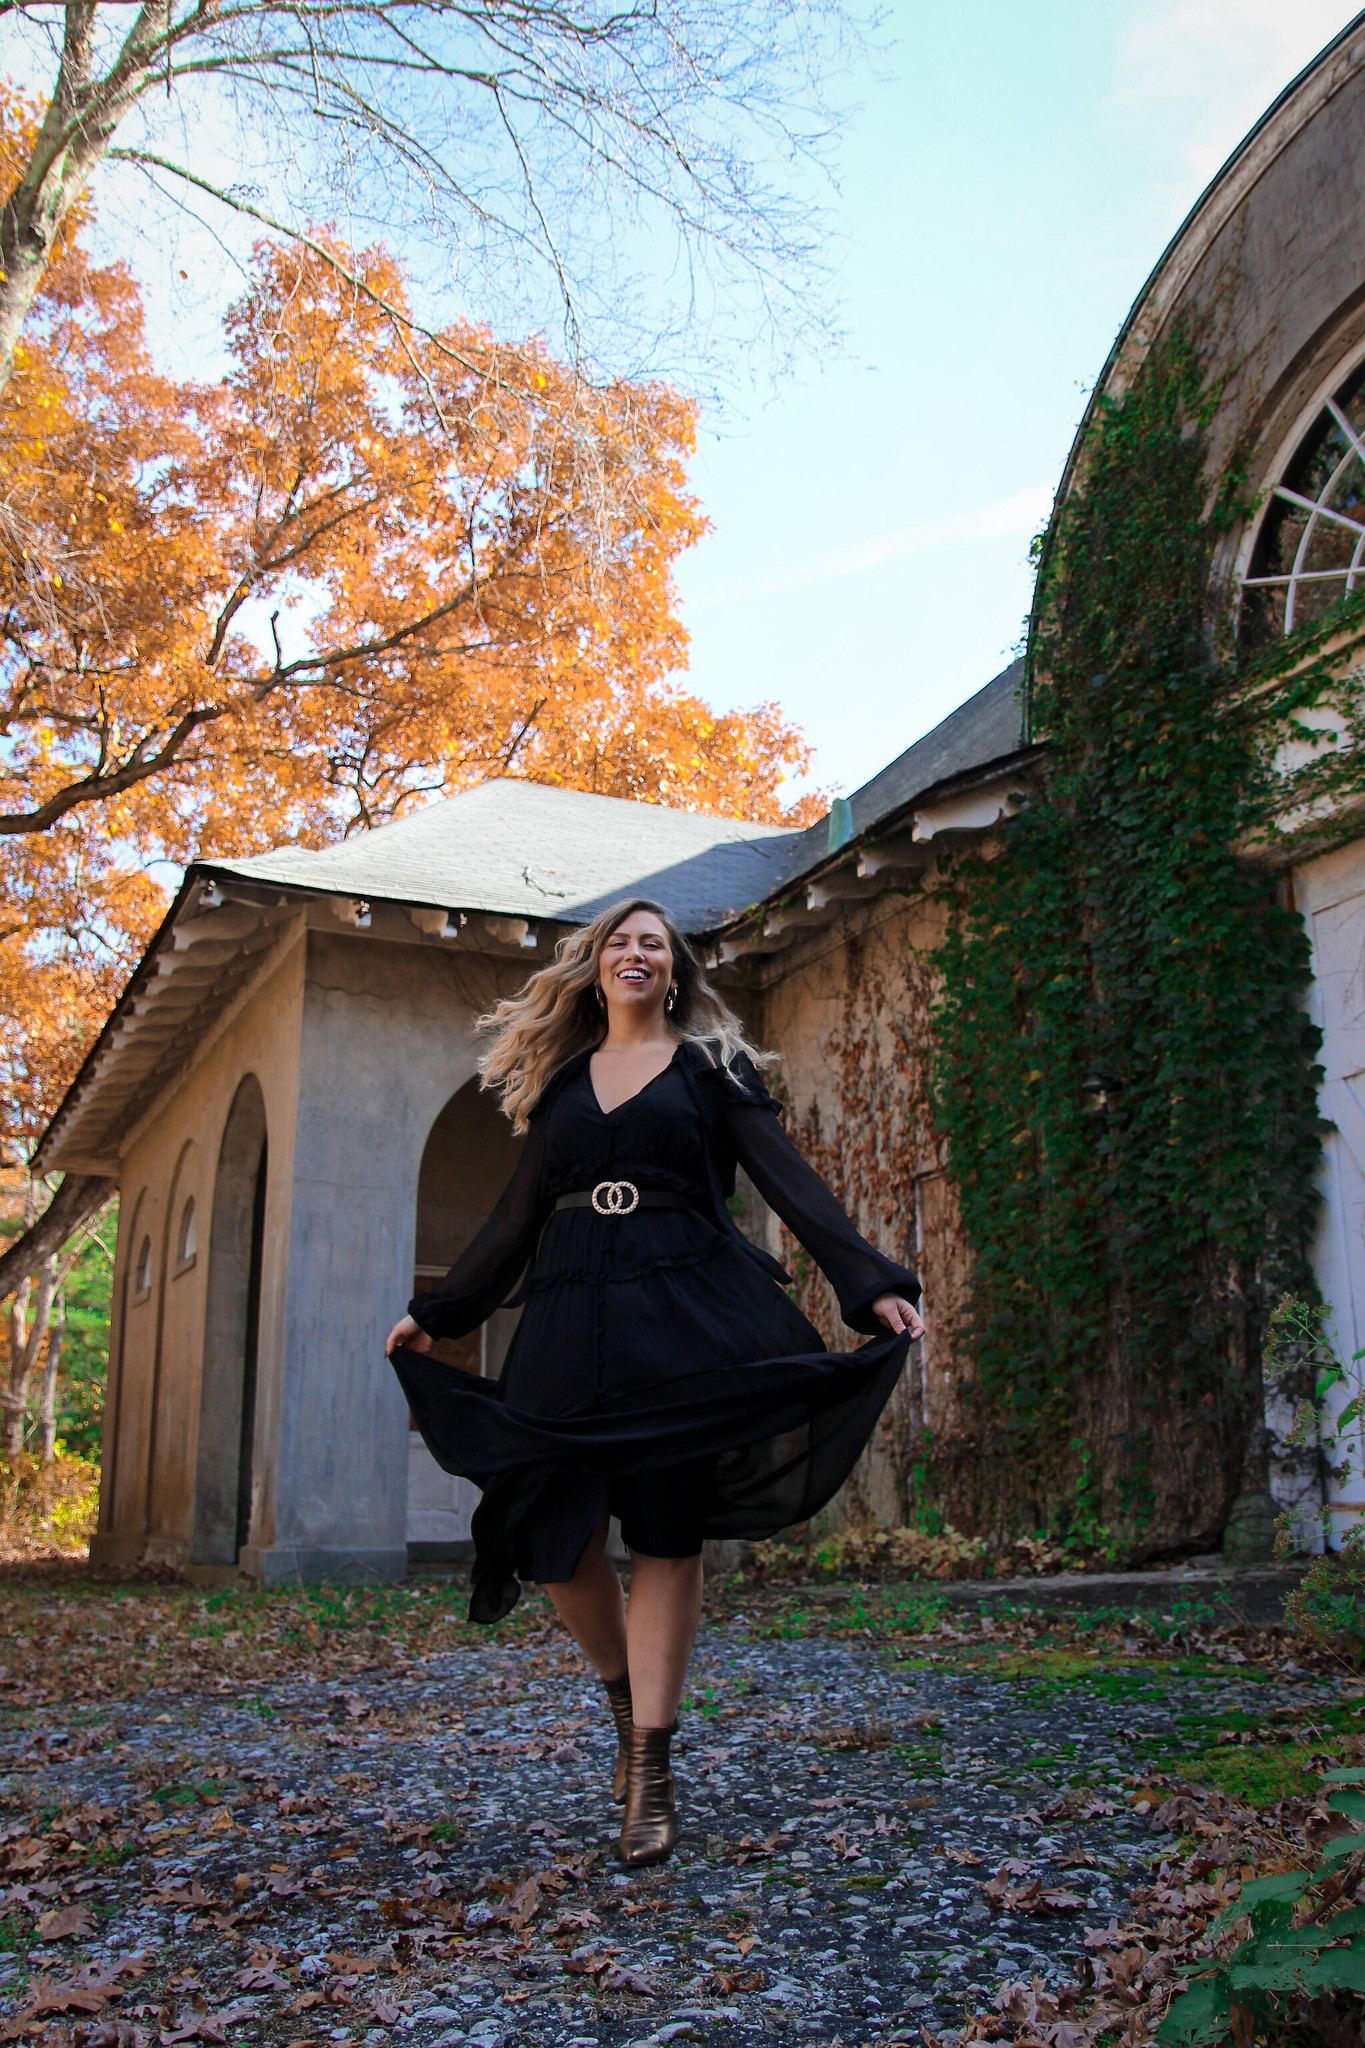 Witchy Black Dress Fall Photoshoot in New York | Fall Foliage | Westchester County NY Merestead | Twirling Photos